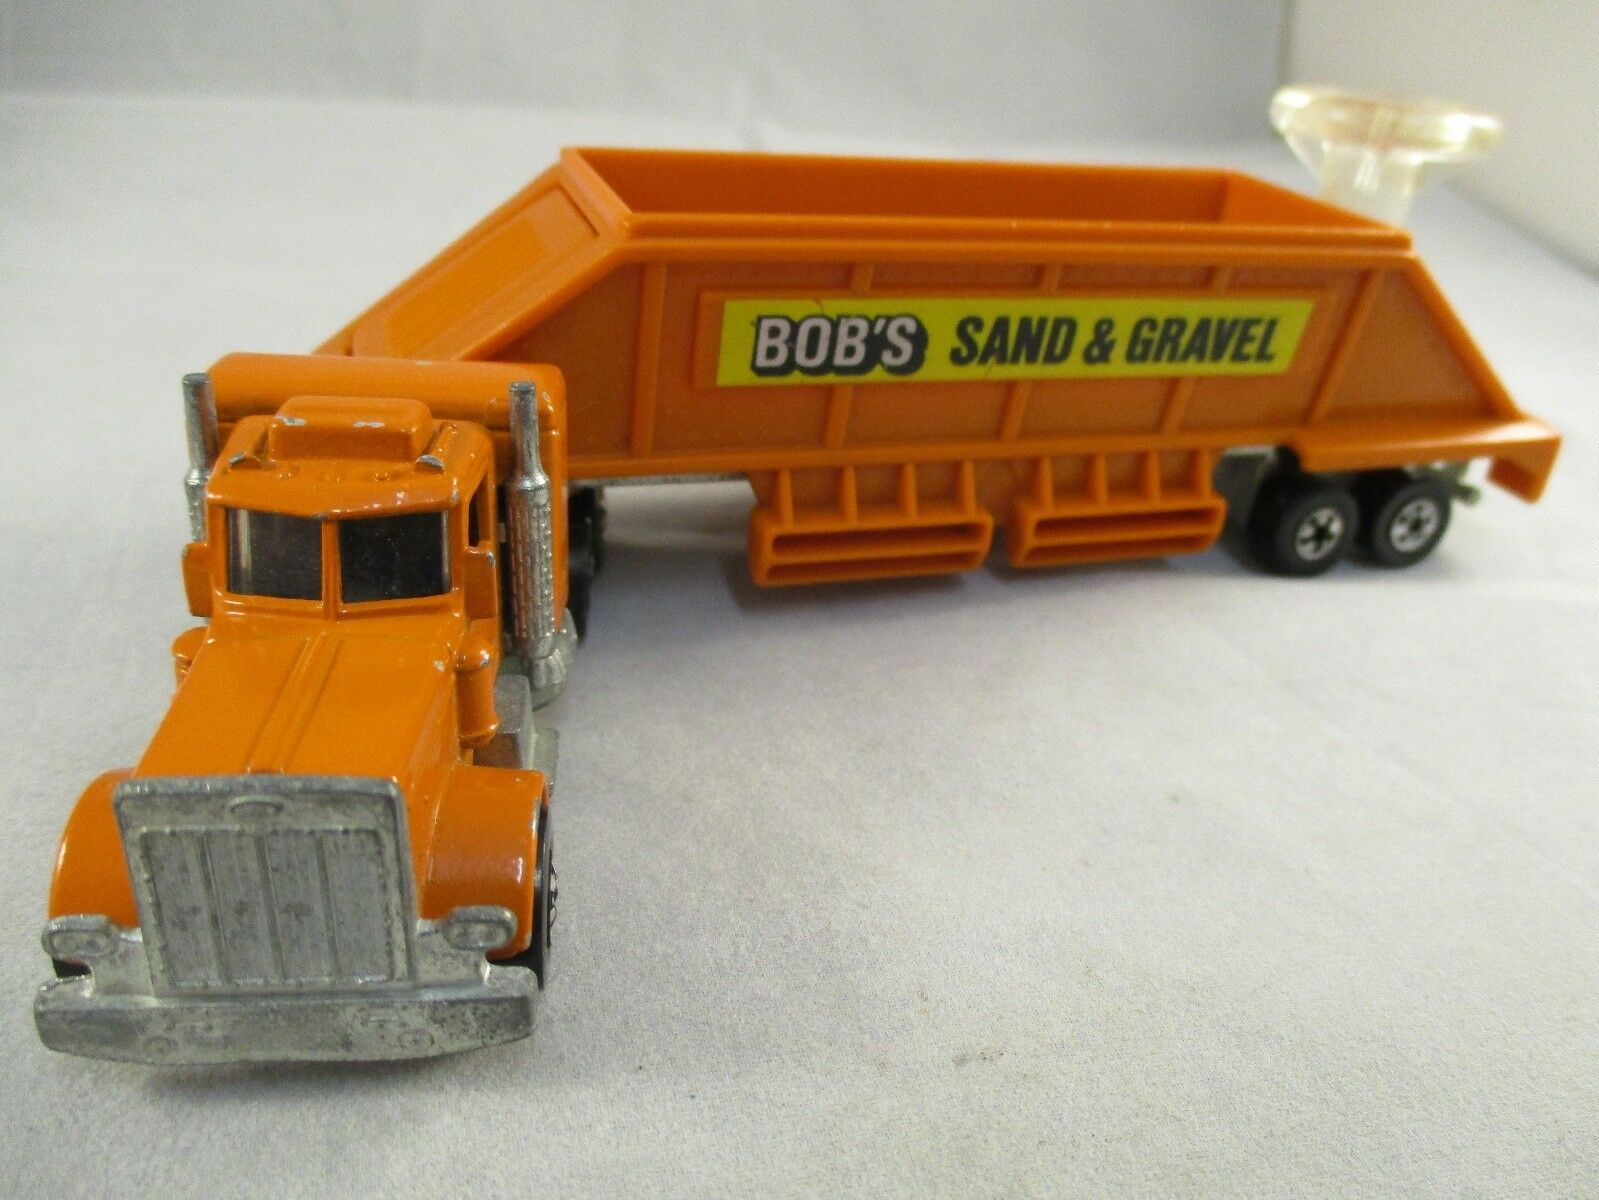 Vintage Hot Wheels PETERBILT HAULER BOB'S SAND & GRAVEL Steering Rigs Rare VGC